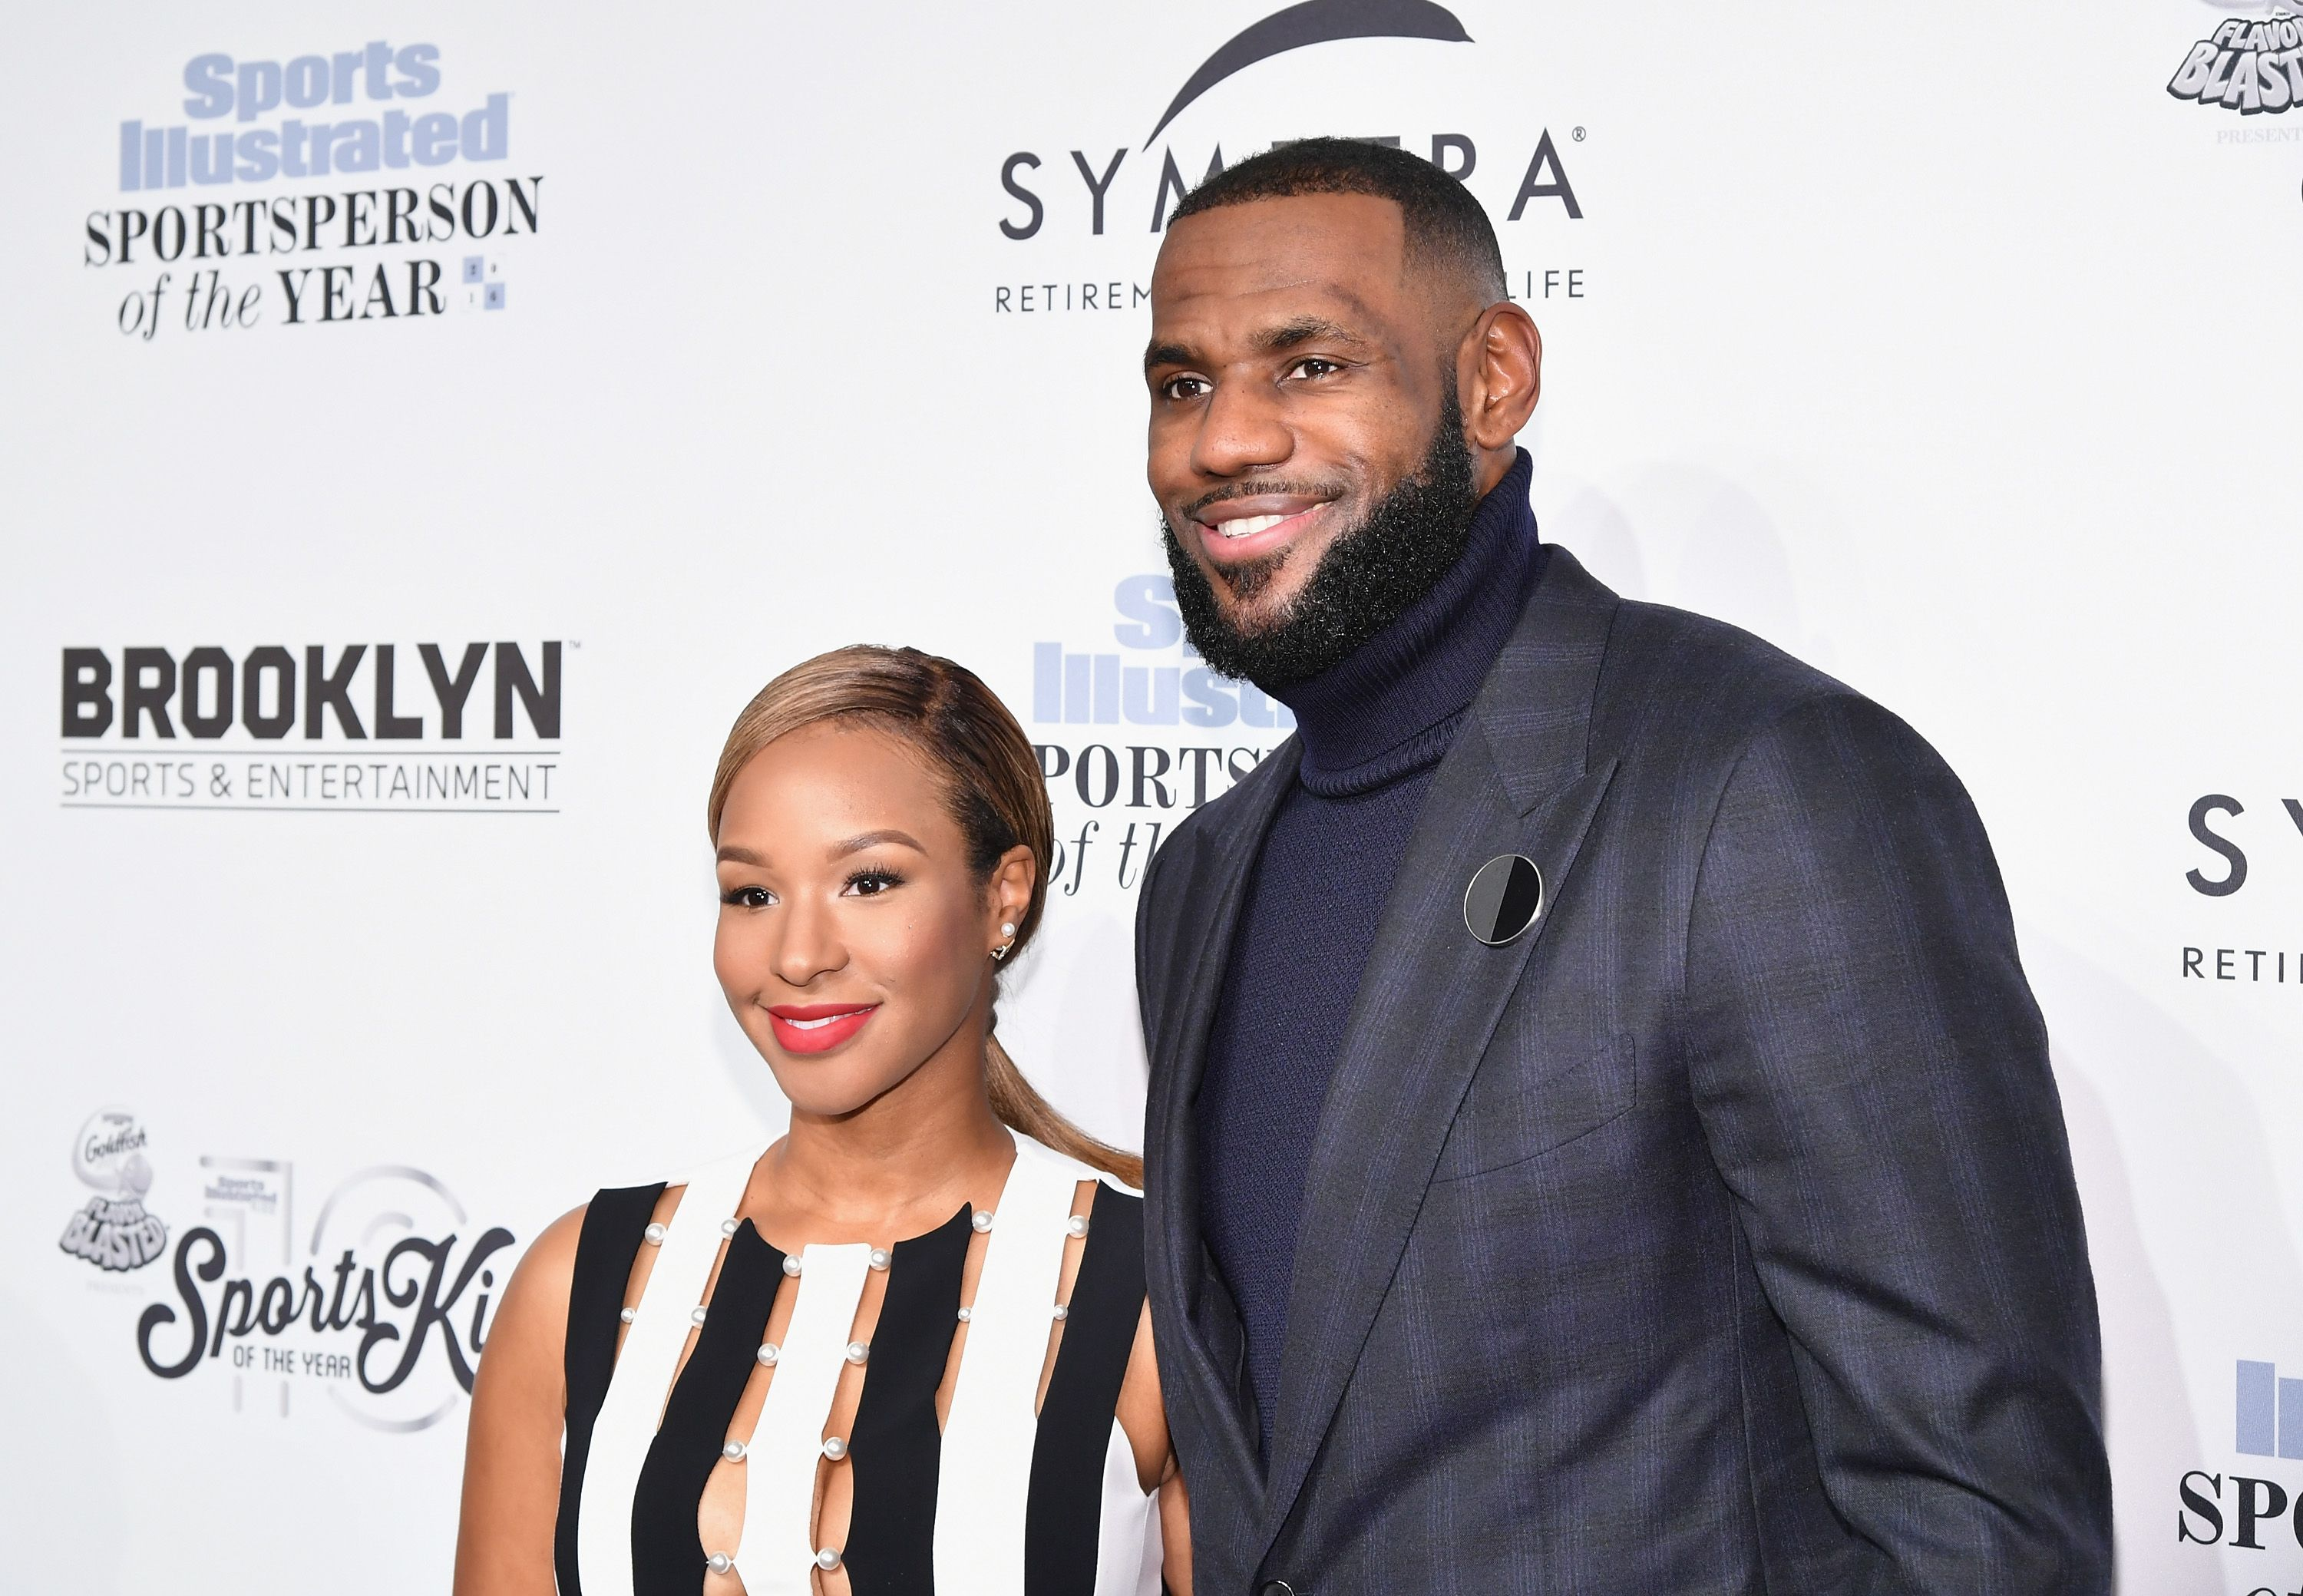 Savannah Brinson and LeBron James at the Sports Illustrated Sportsperson of the Year Ceremony 2016 on December 12, 2016 in New York City. | Source: Getty Images